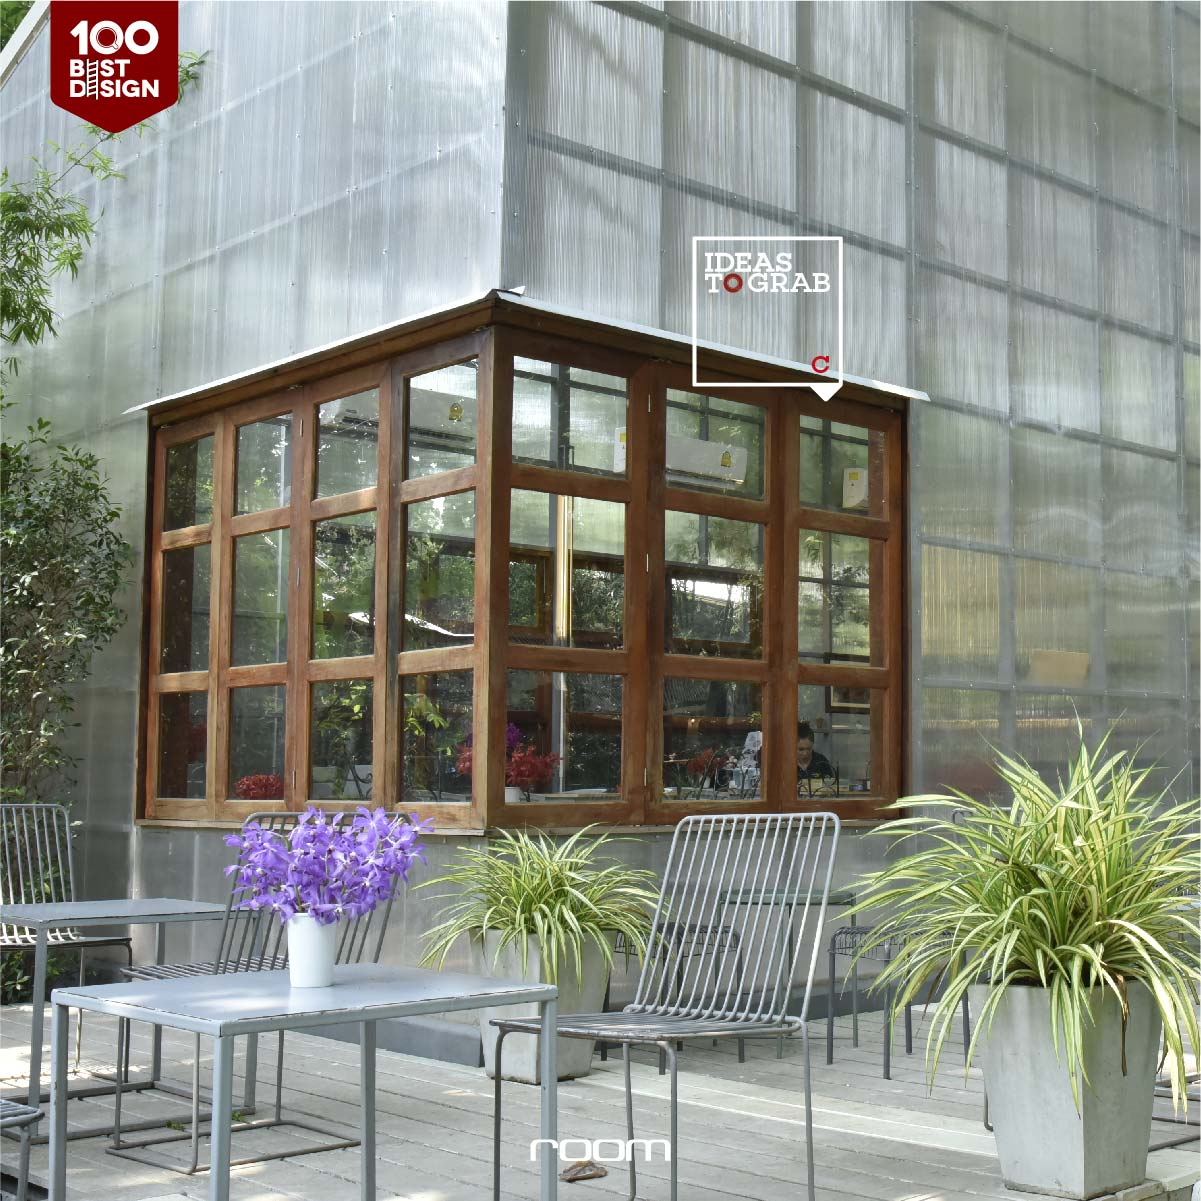 Design Idea for Green Cafe and restaurant